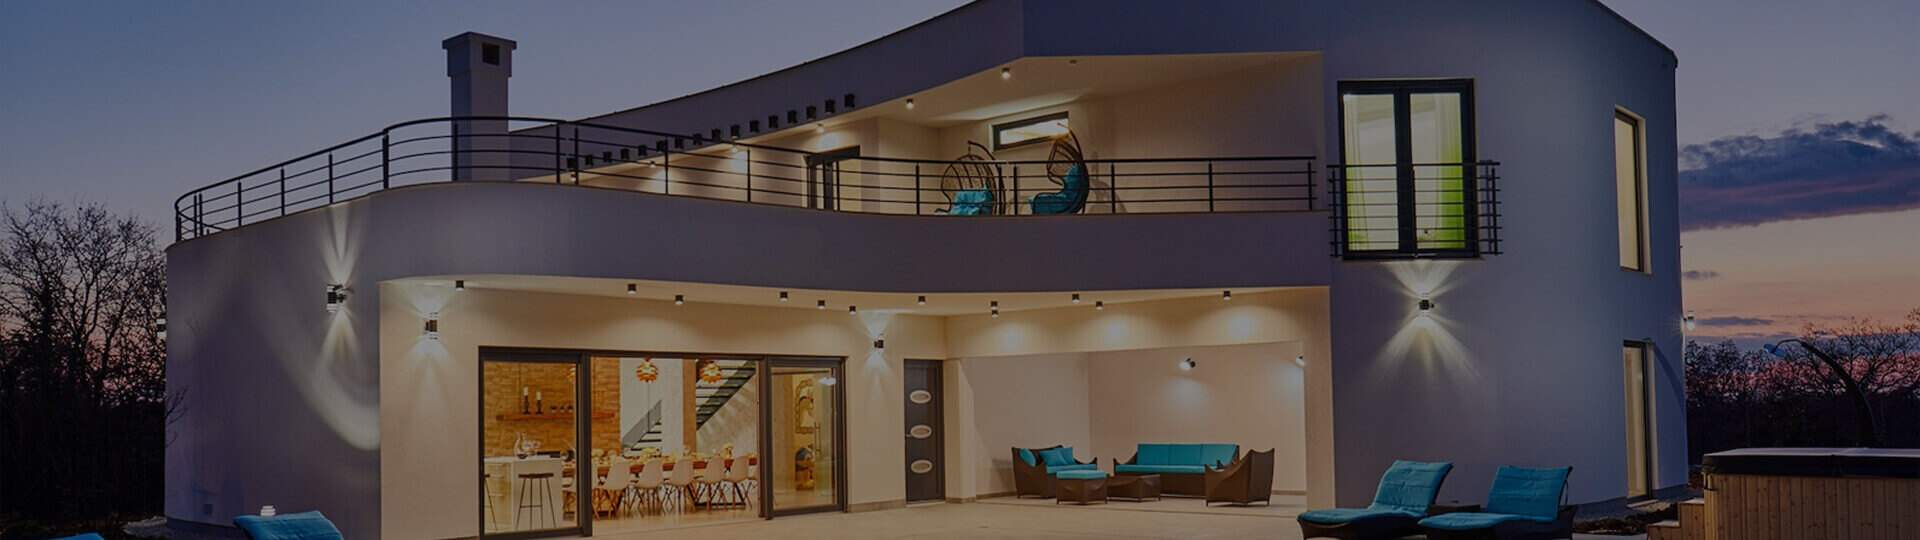 Real Estate Projects in Karachi